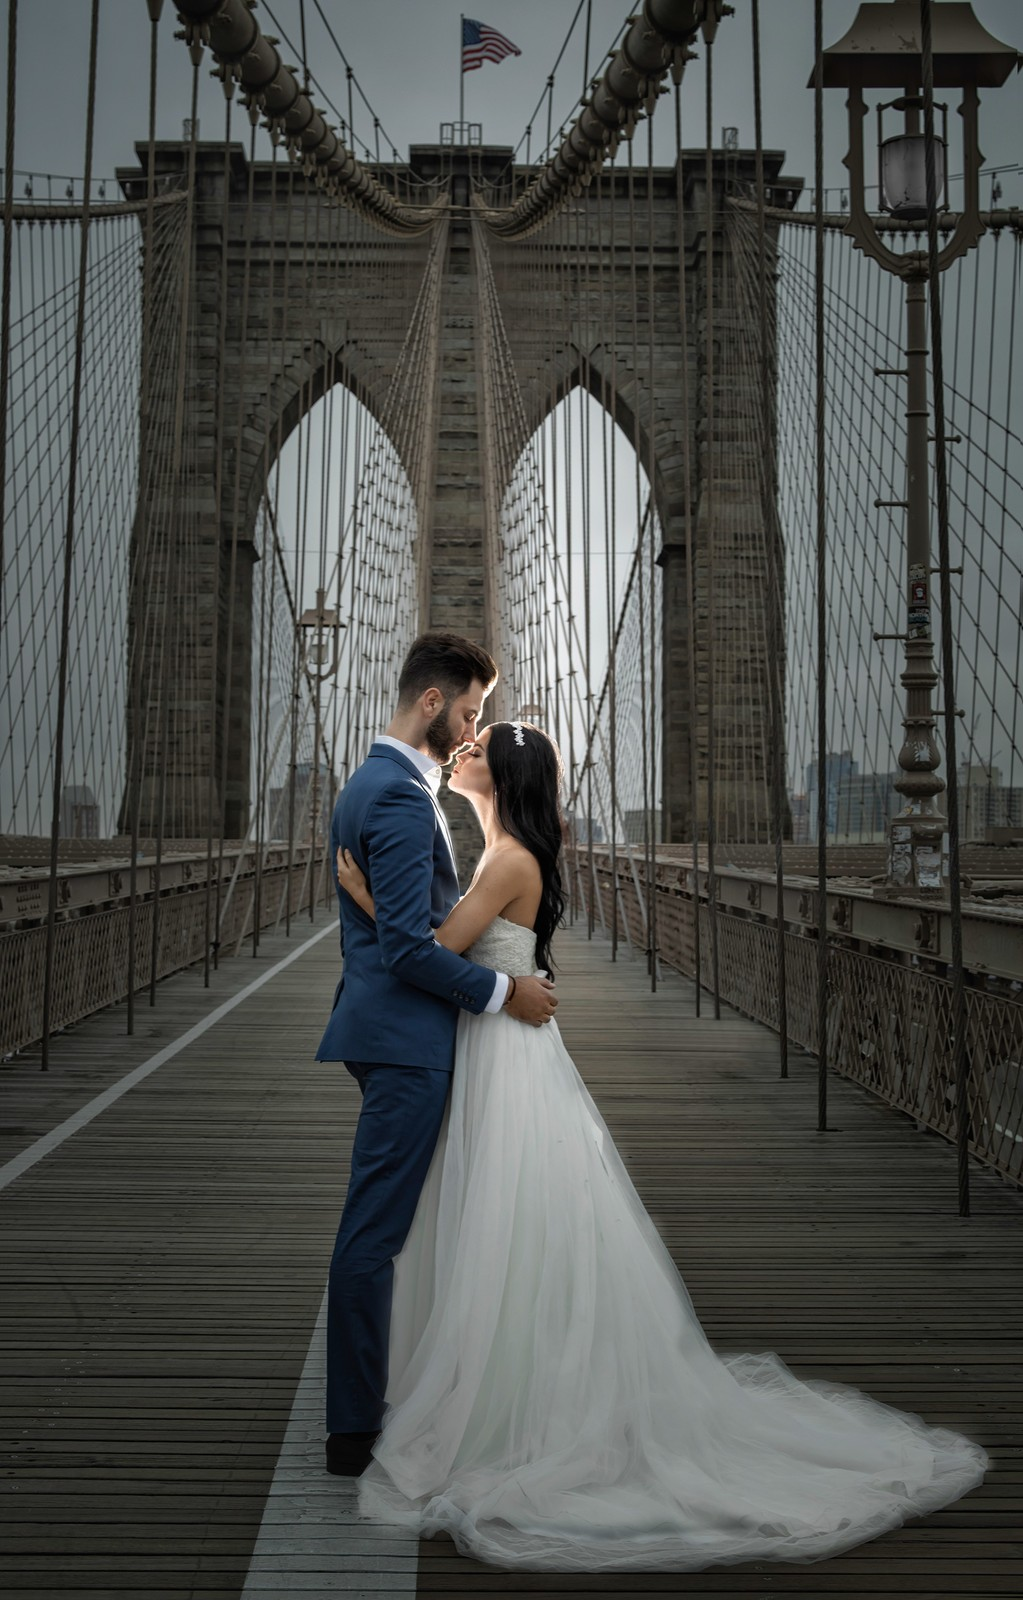 Brooklyn Bridge Elopement: NYC wedding photographer